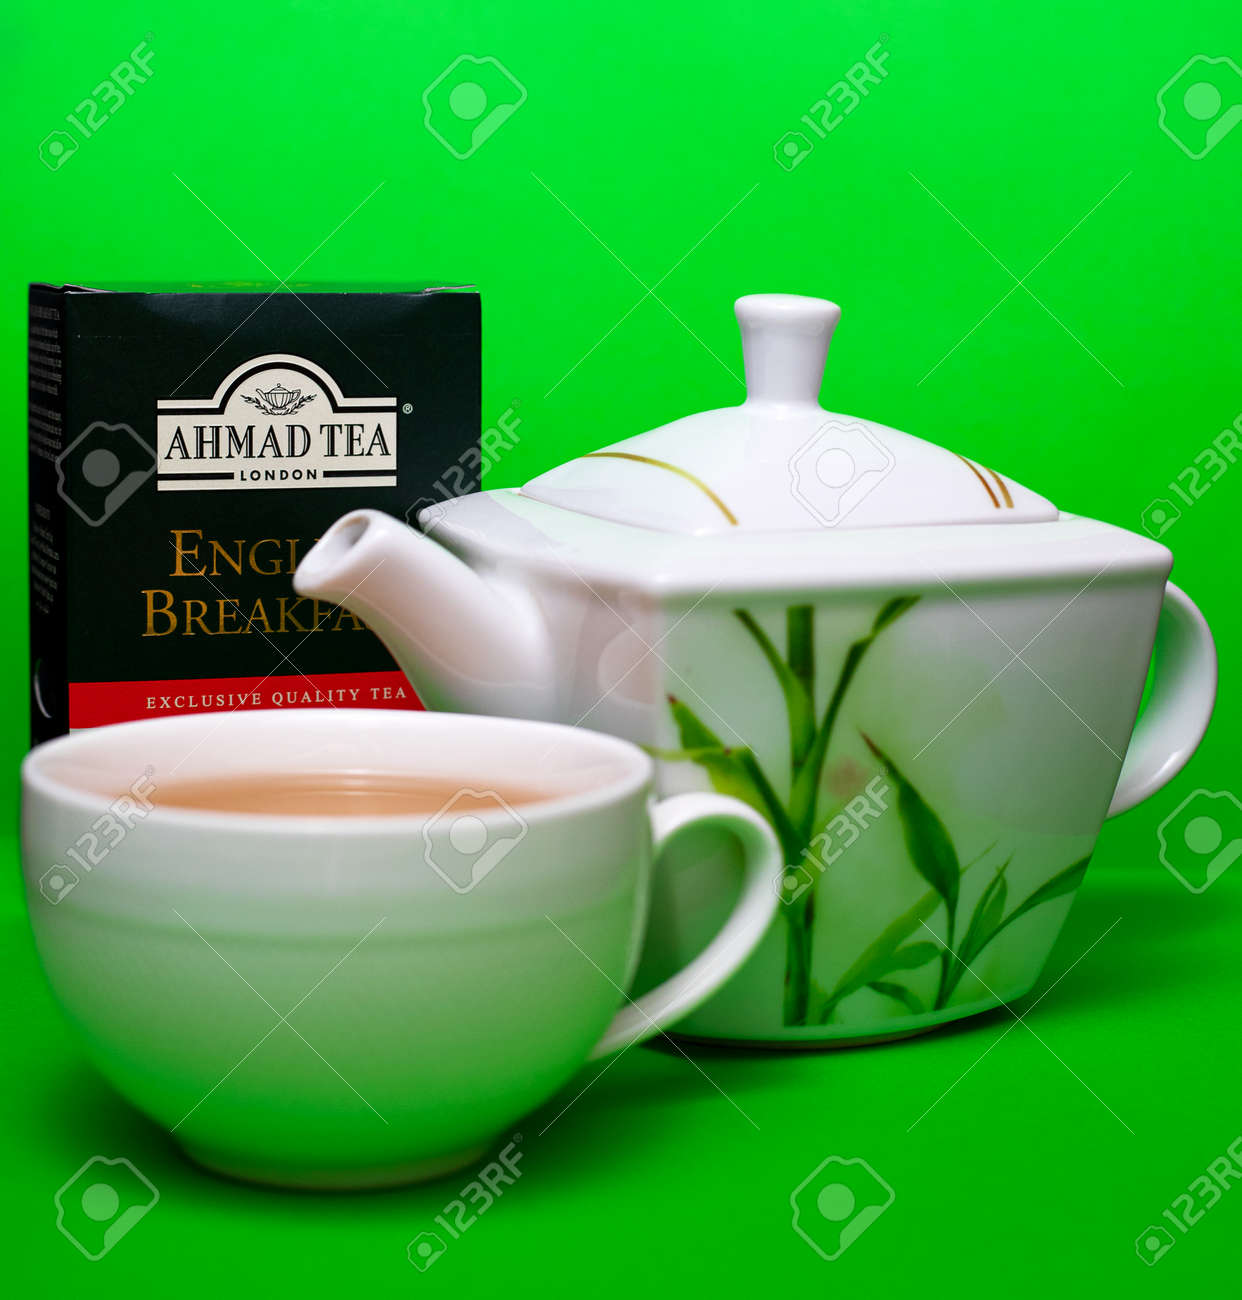 Teapot and cup of Ahmad black leaf tea on a green background. 01/06/2021. Warsaw, Poland - 162098057